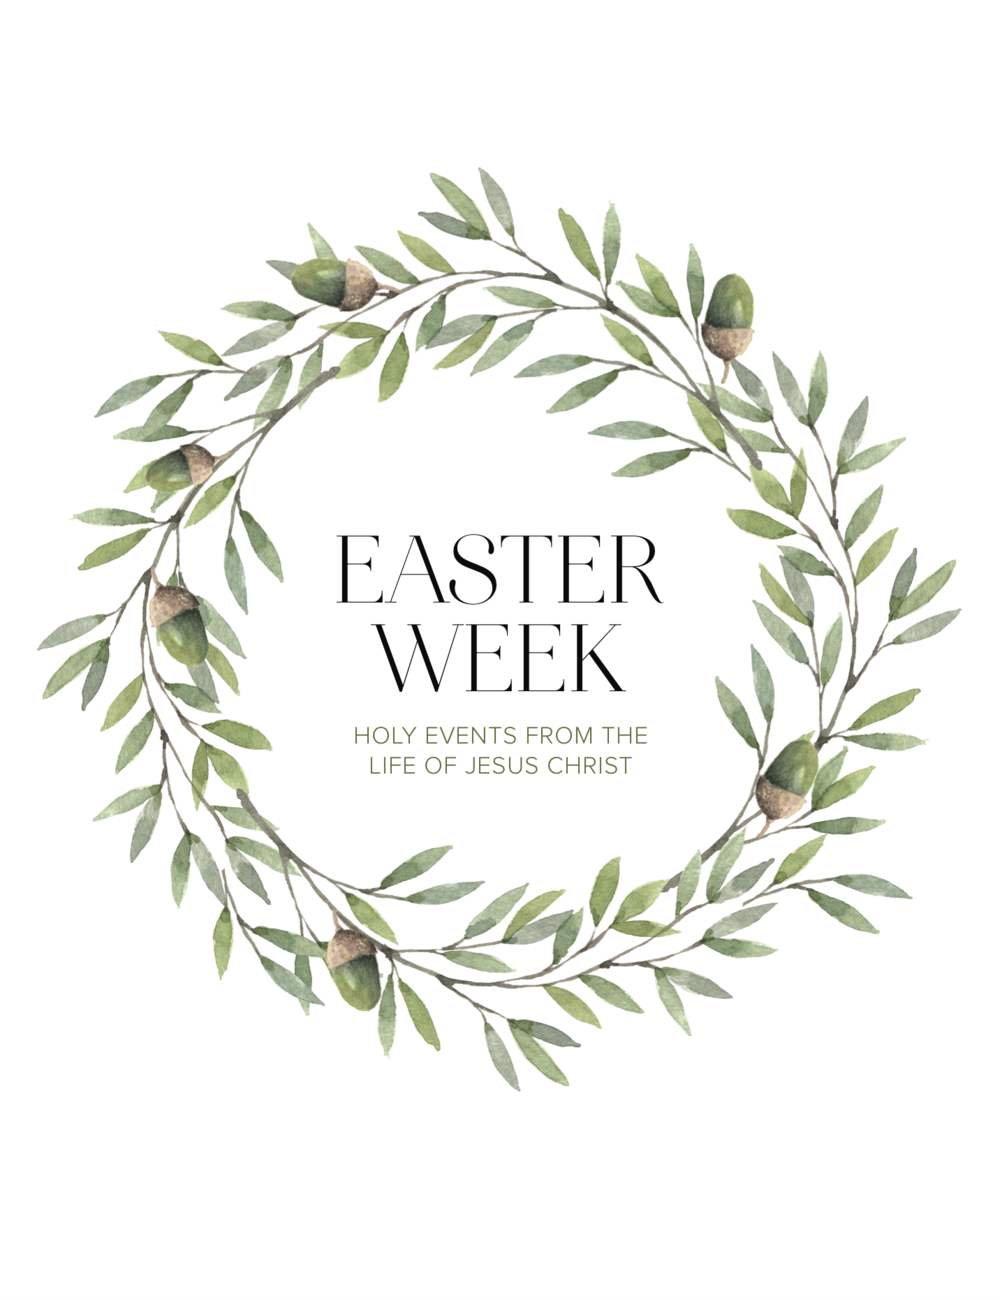 Easter Week (daily devotionals)